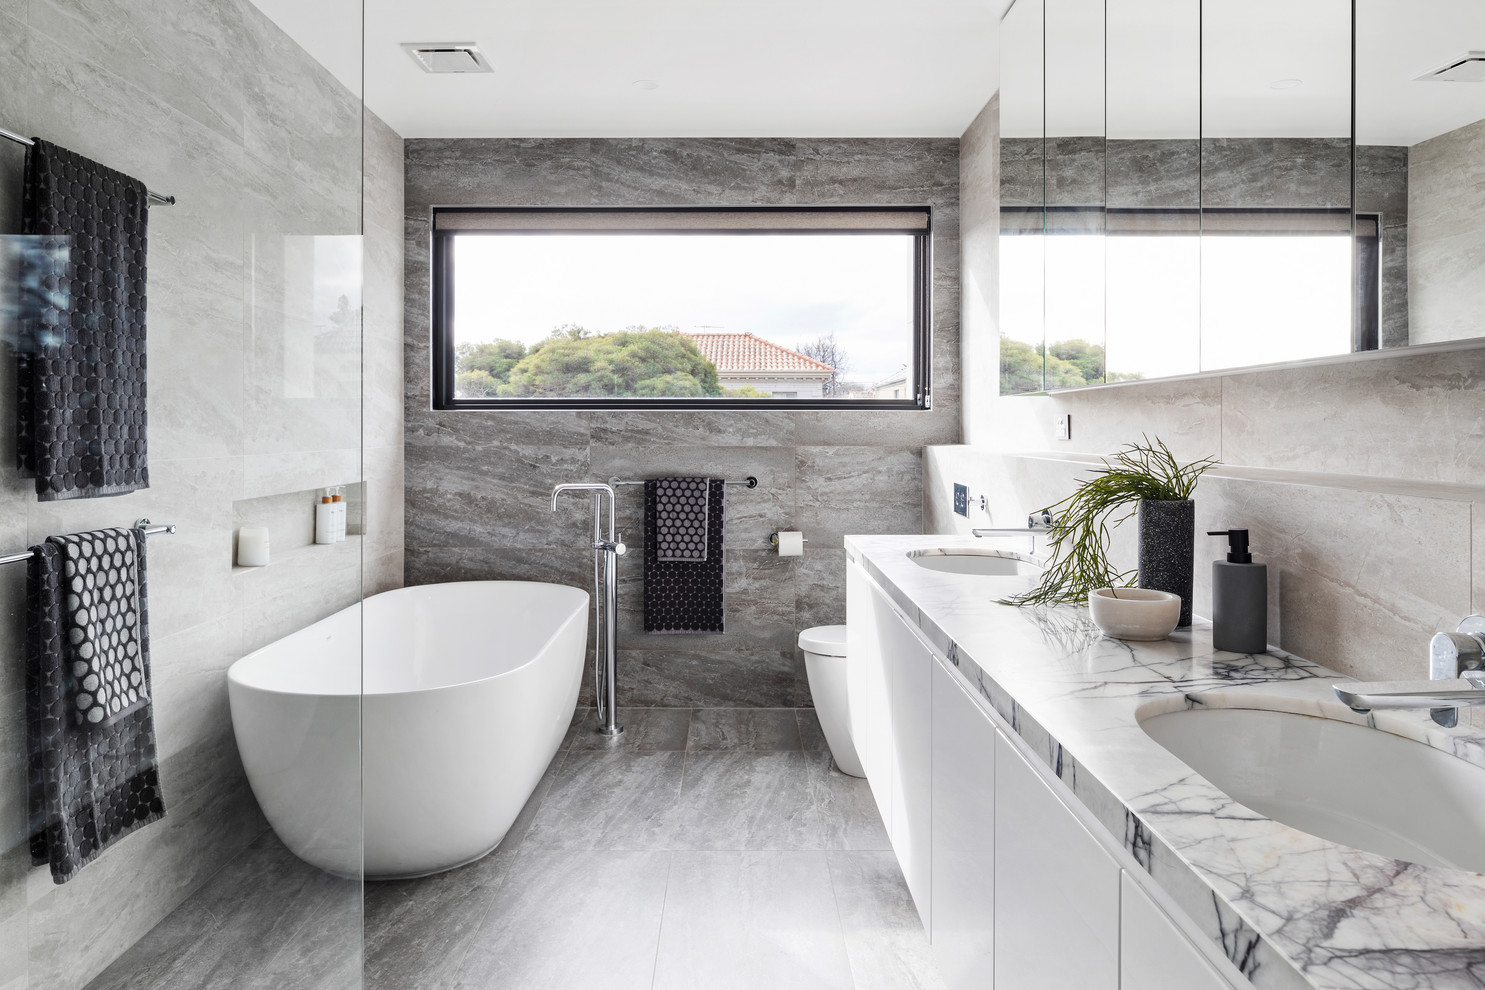 1568143293 675 25 fabulous bathrooms color trends for fall to try out - 25 Fabulous Bathrooms Color Trends for Fall to Try Out